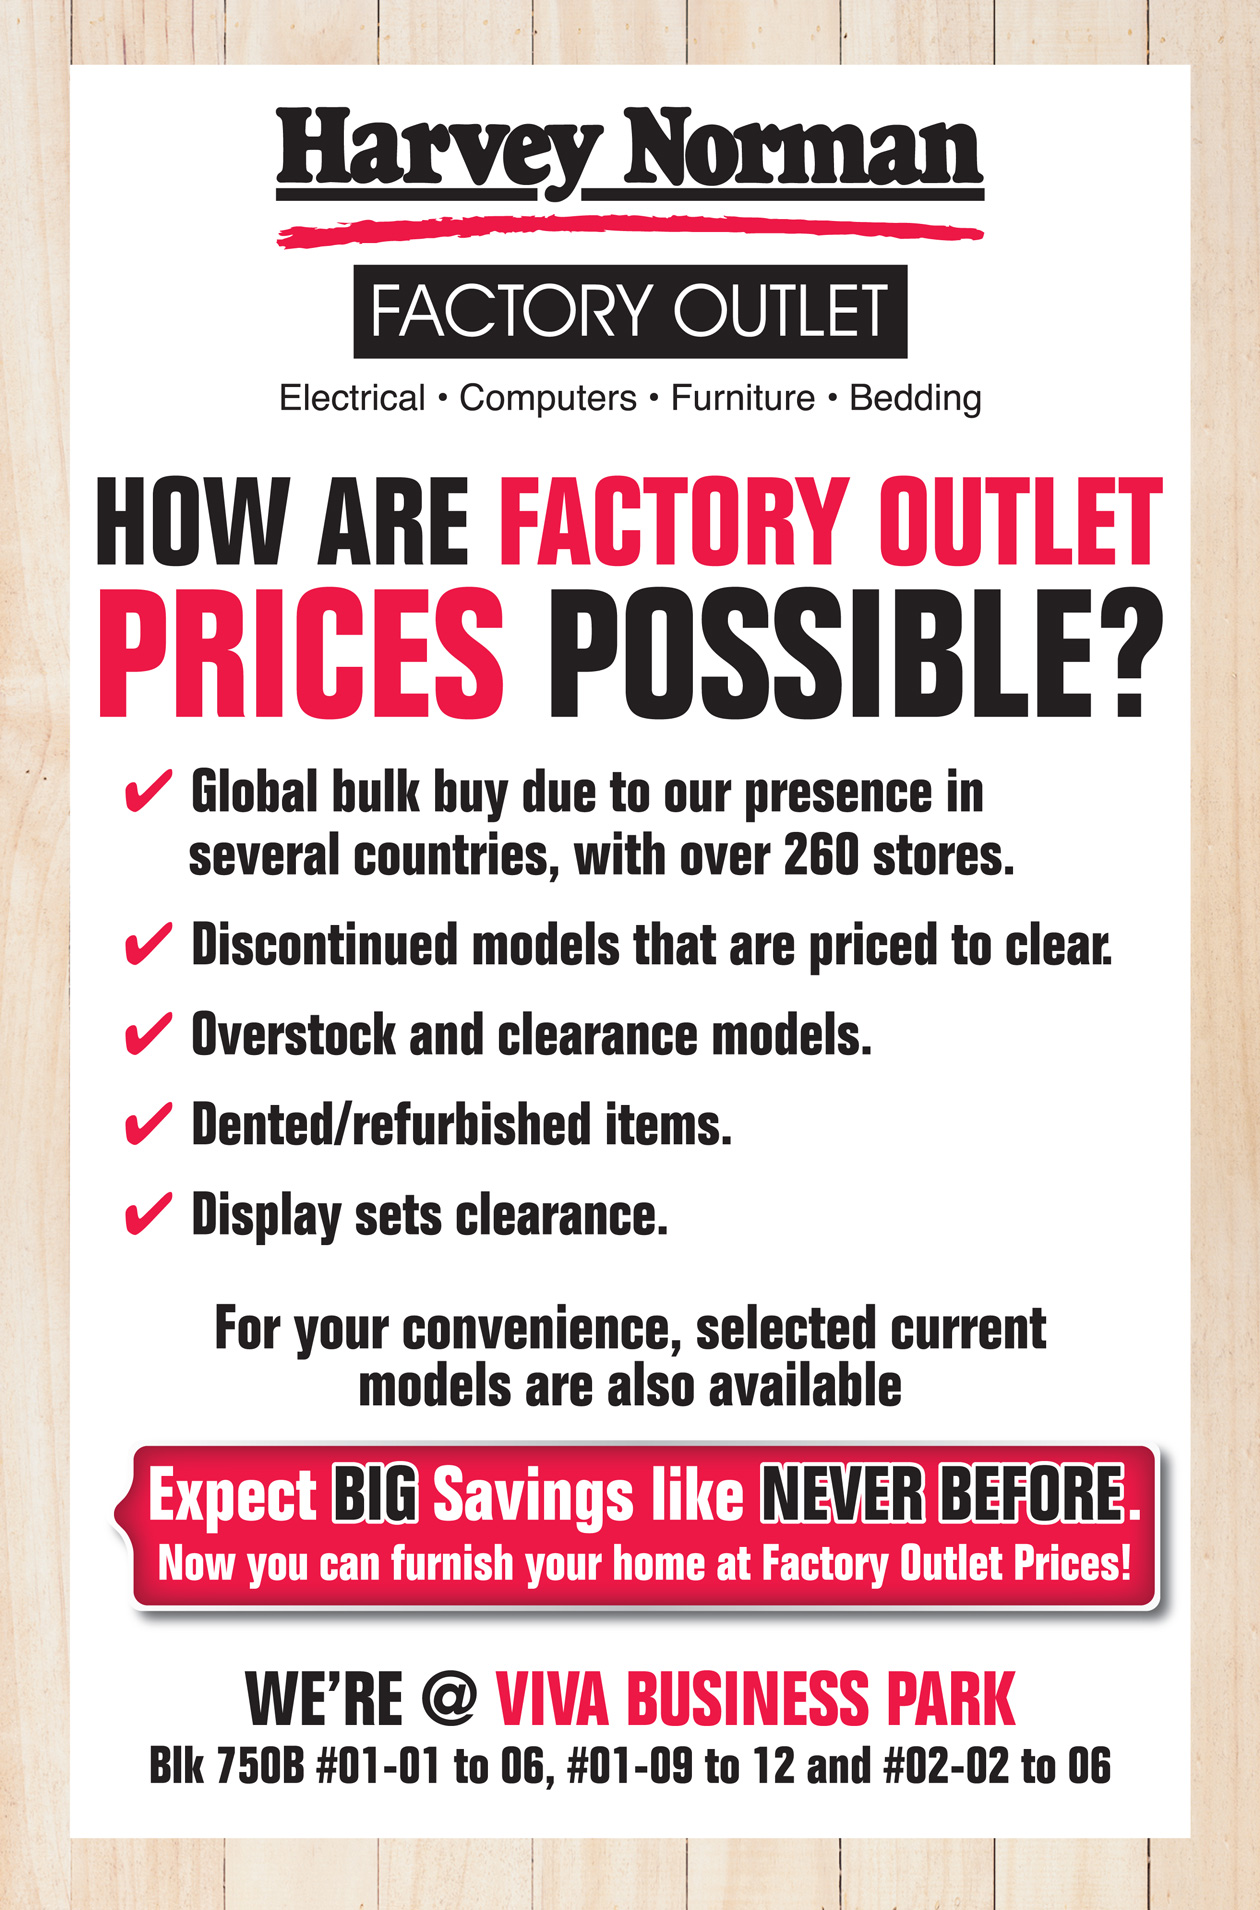 harvey norman factory outlet at viva business park